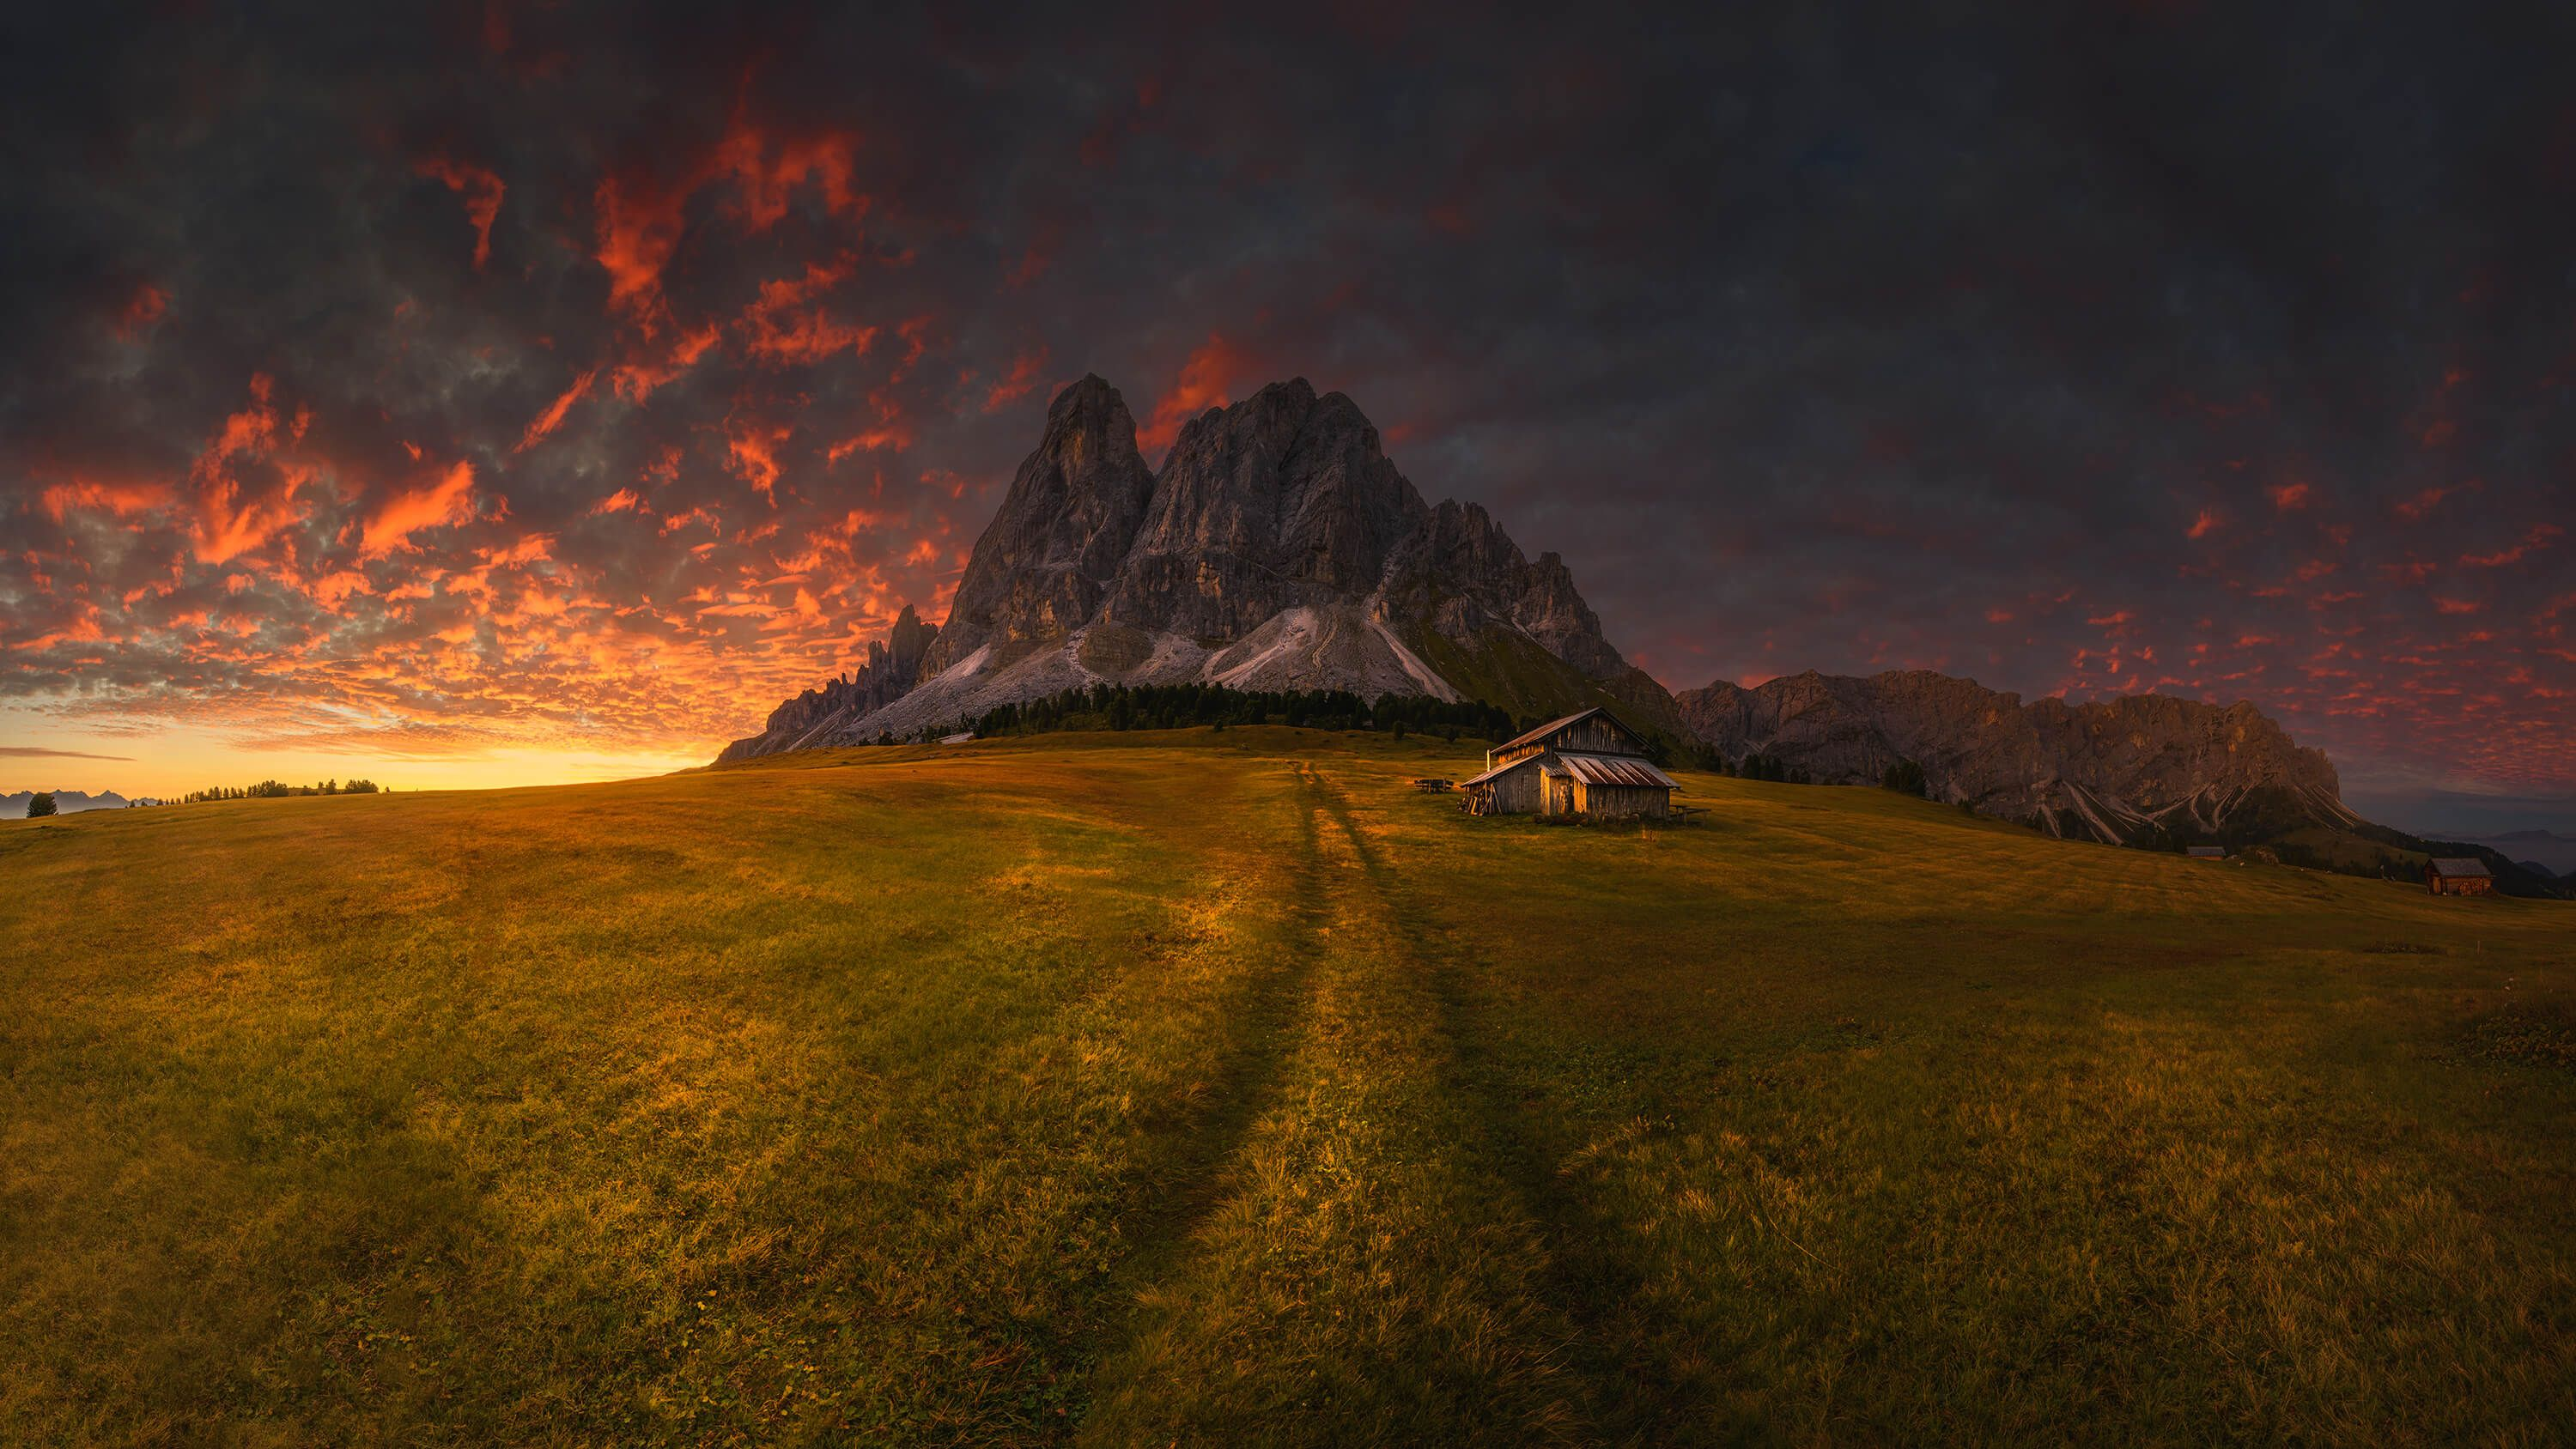 Sunset by a mountain